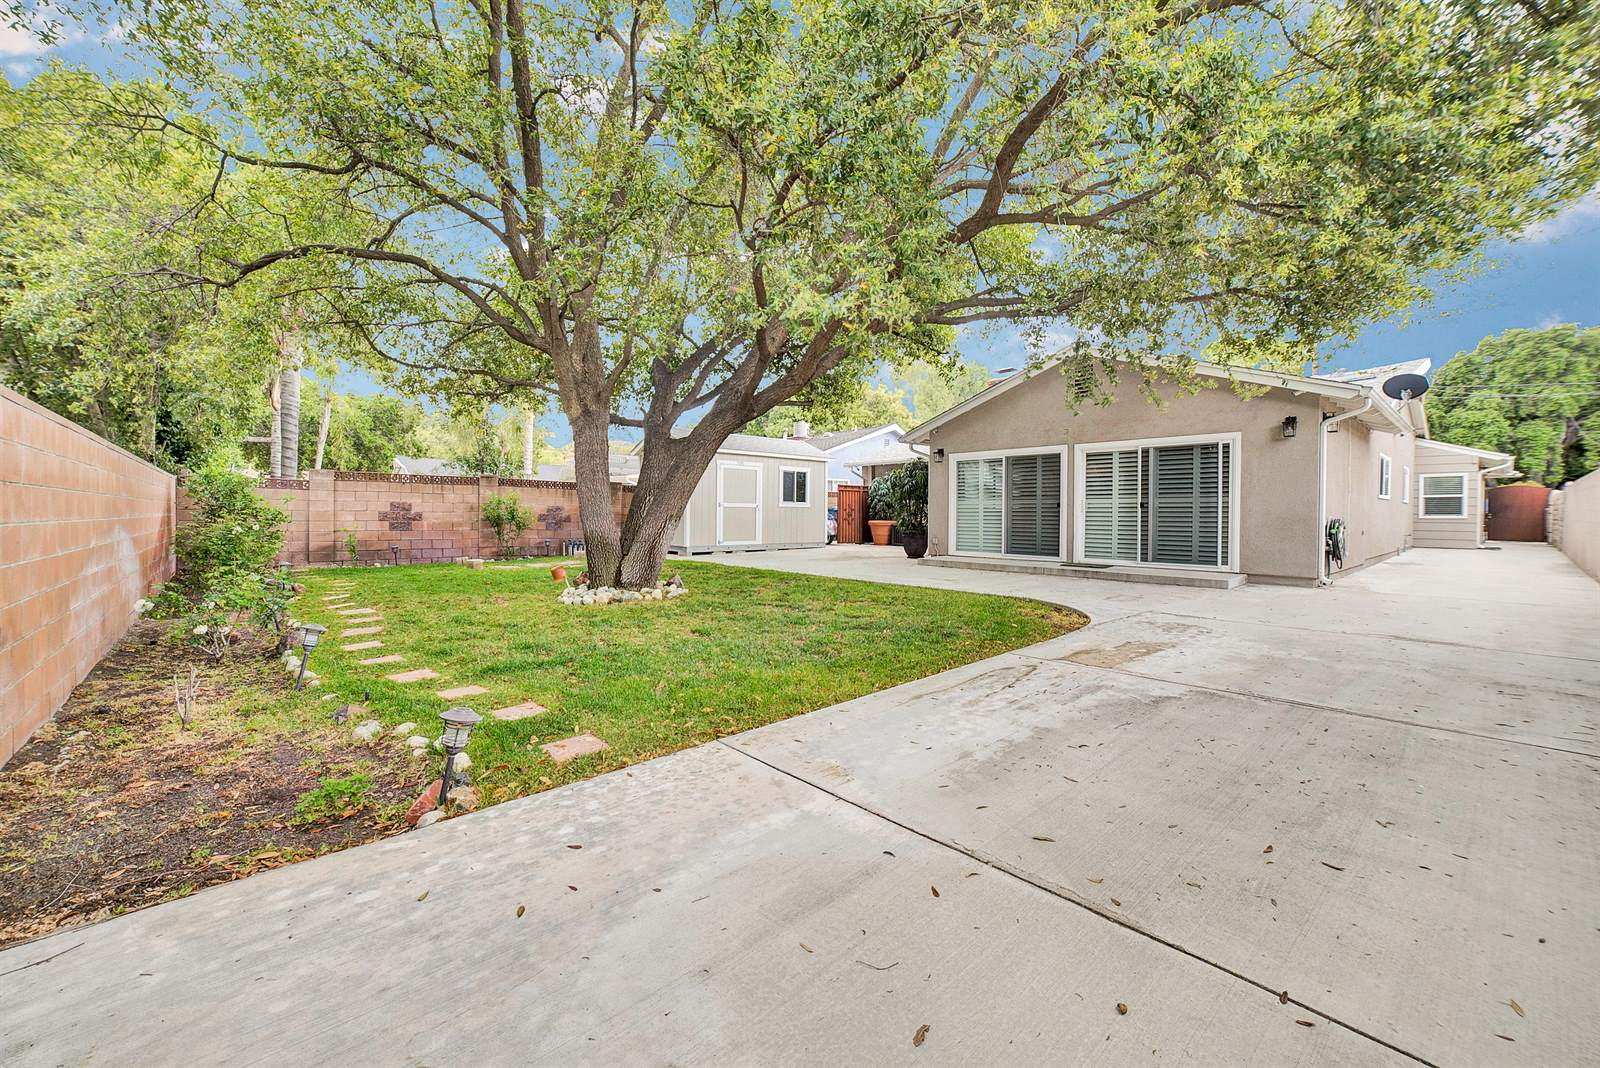 23215 Maple St, Newhall, CA 91321